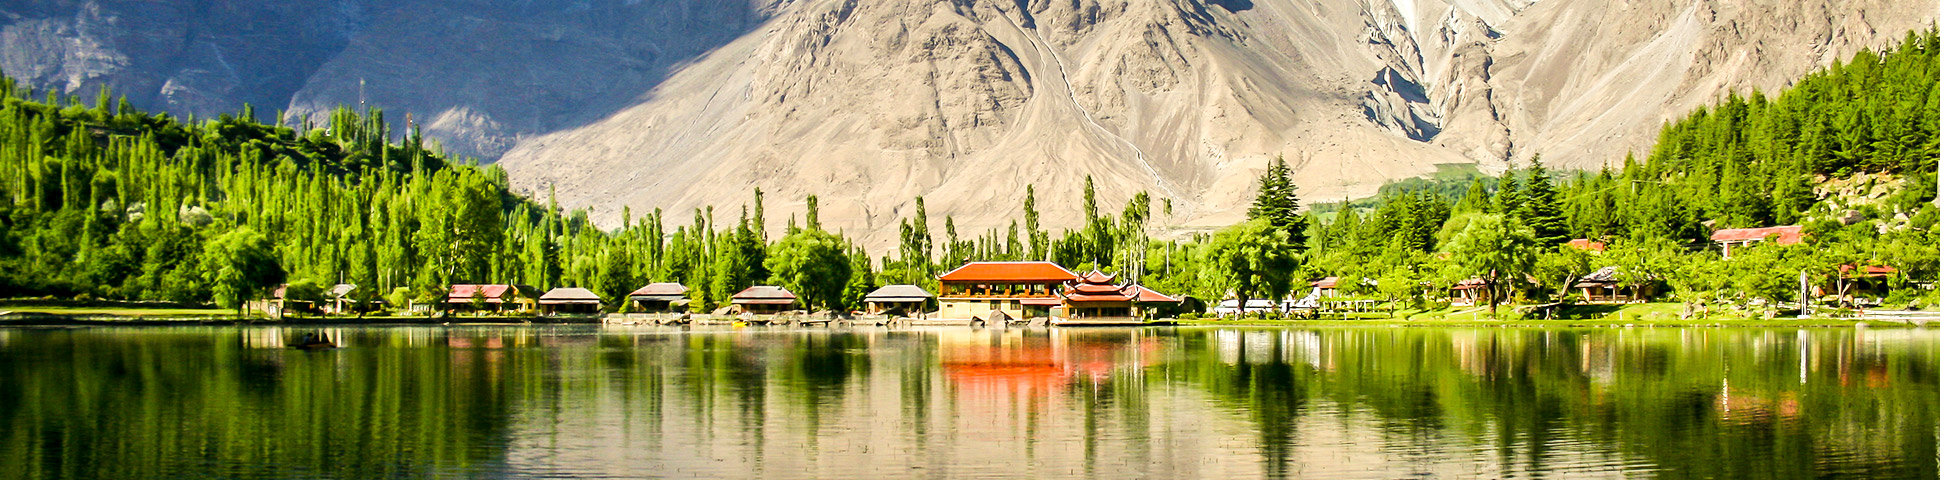 Shangri La resort on guided tour in Hunza and Skardu valleys in Pakistan